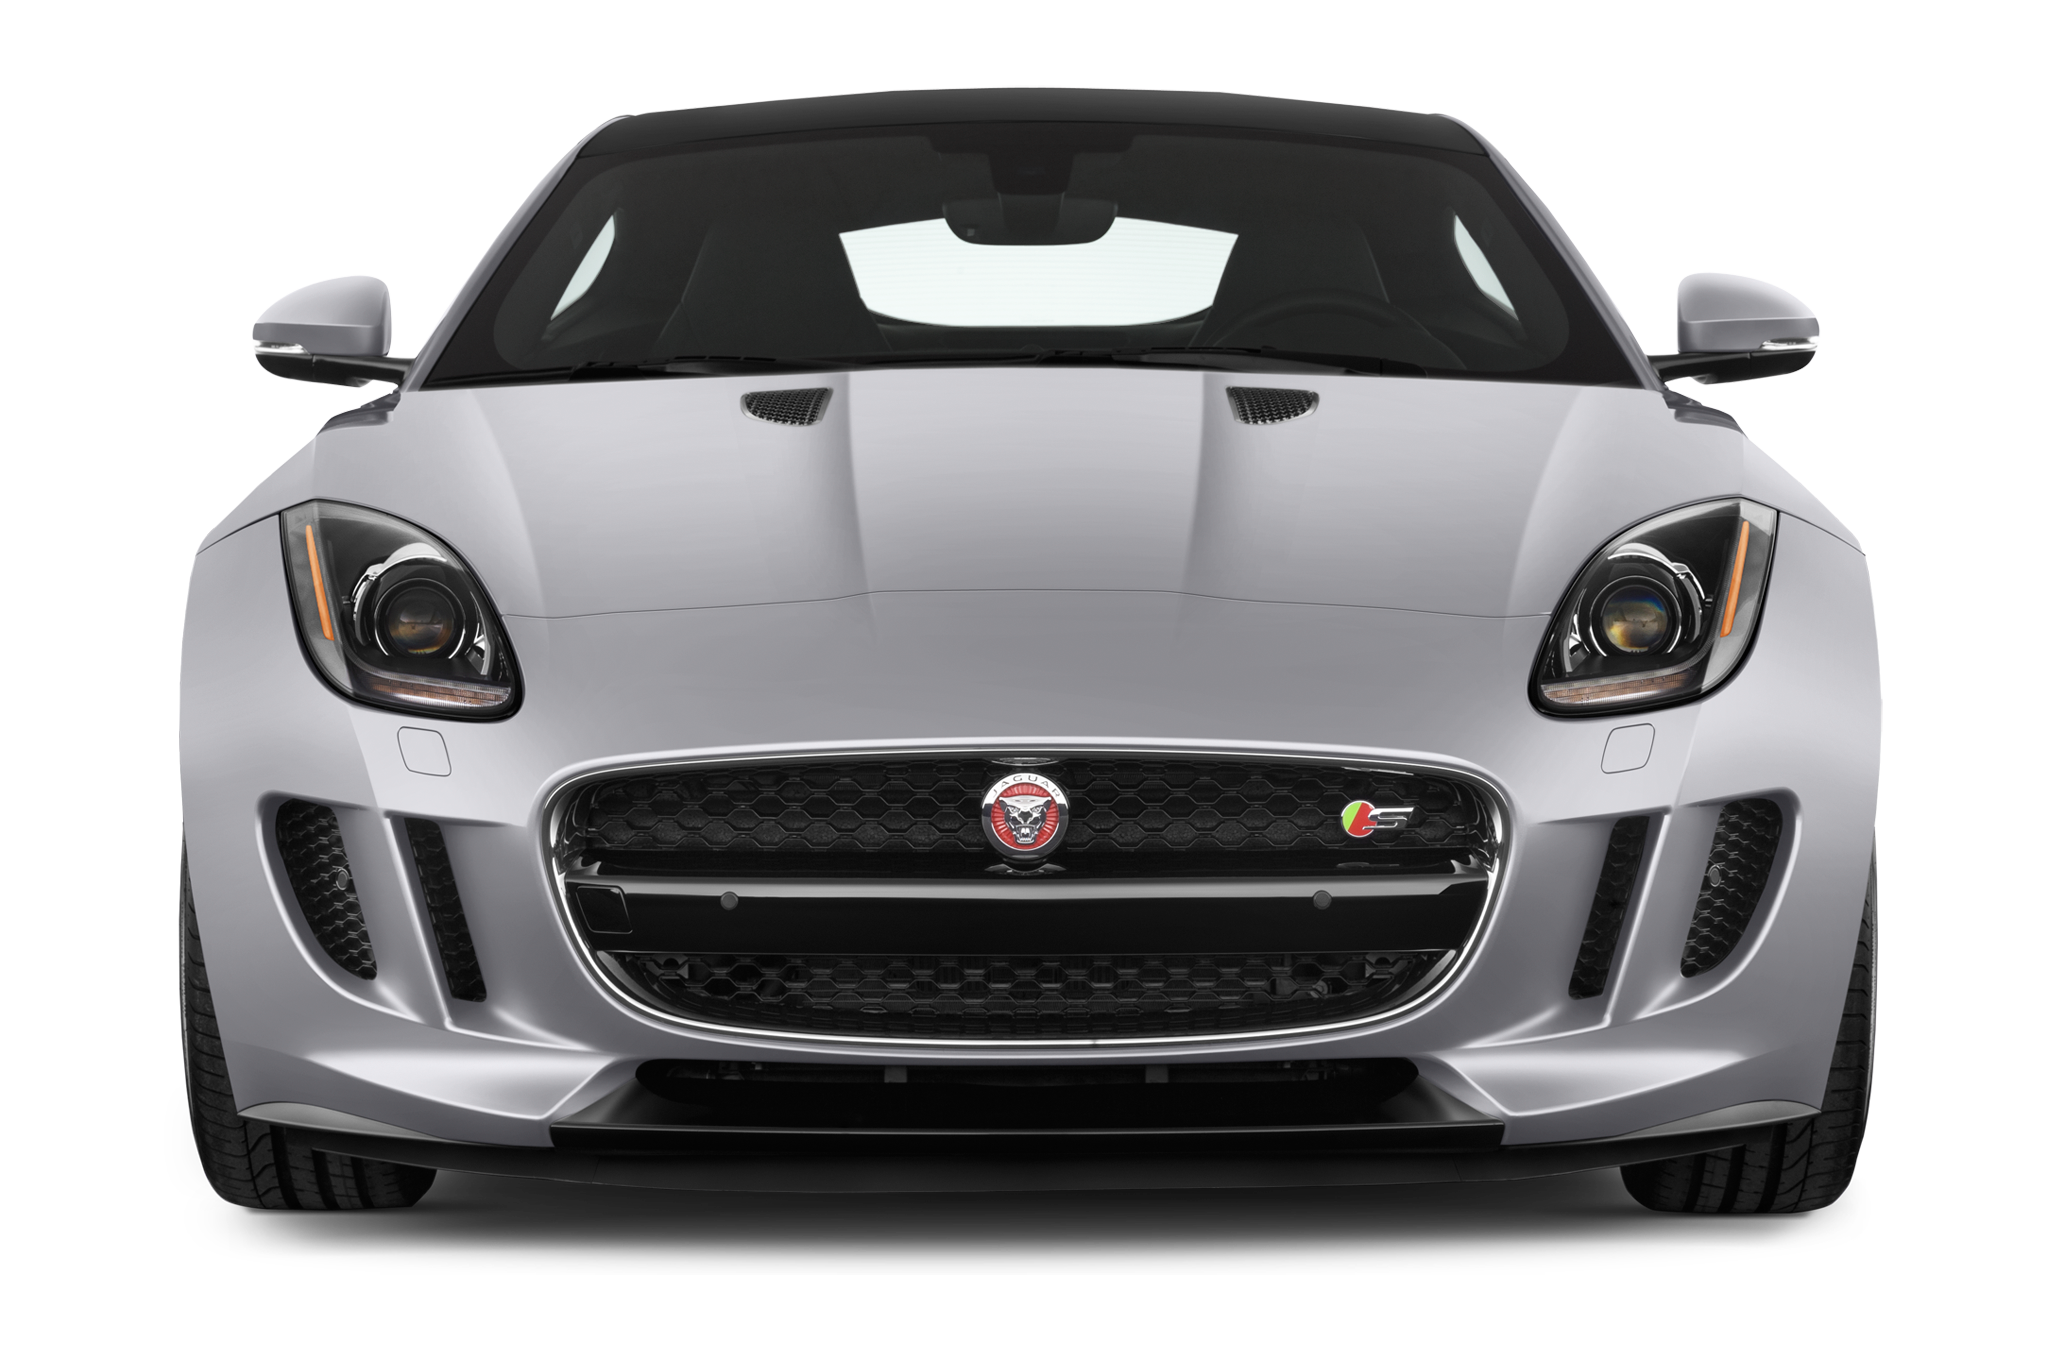 Car headlights at night clipart banner free library Tunnel Run in a 2017 Jaguar F-Type SVR banner free library